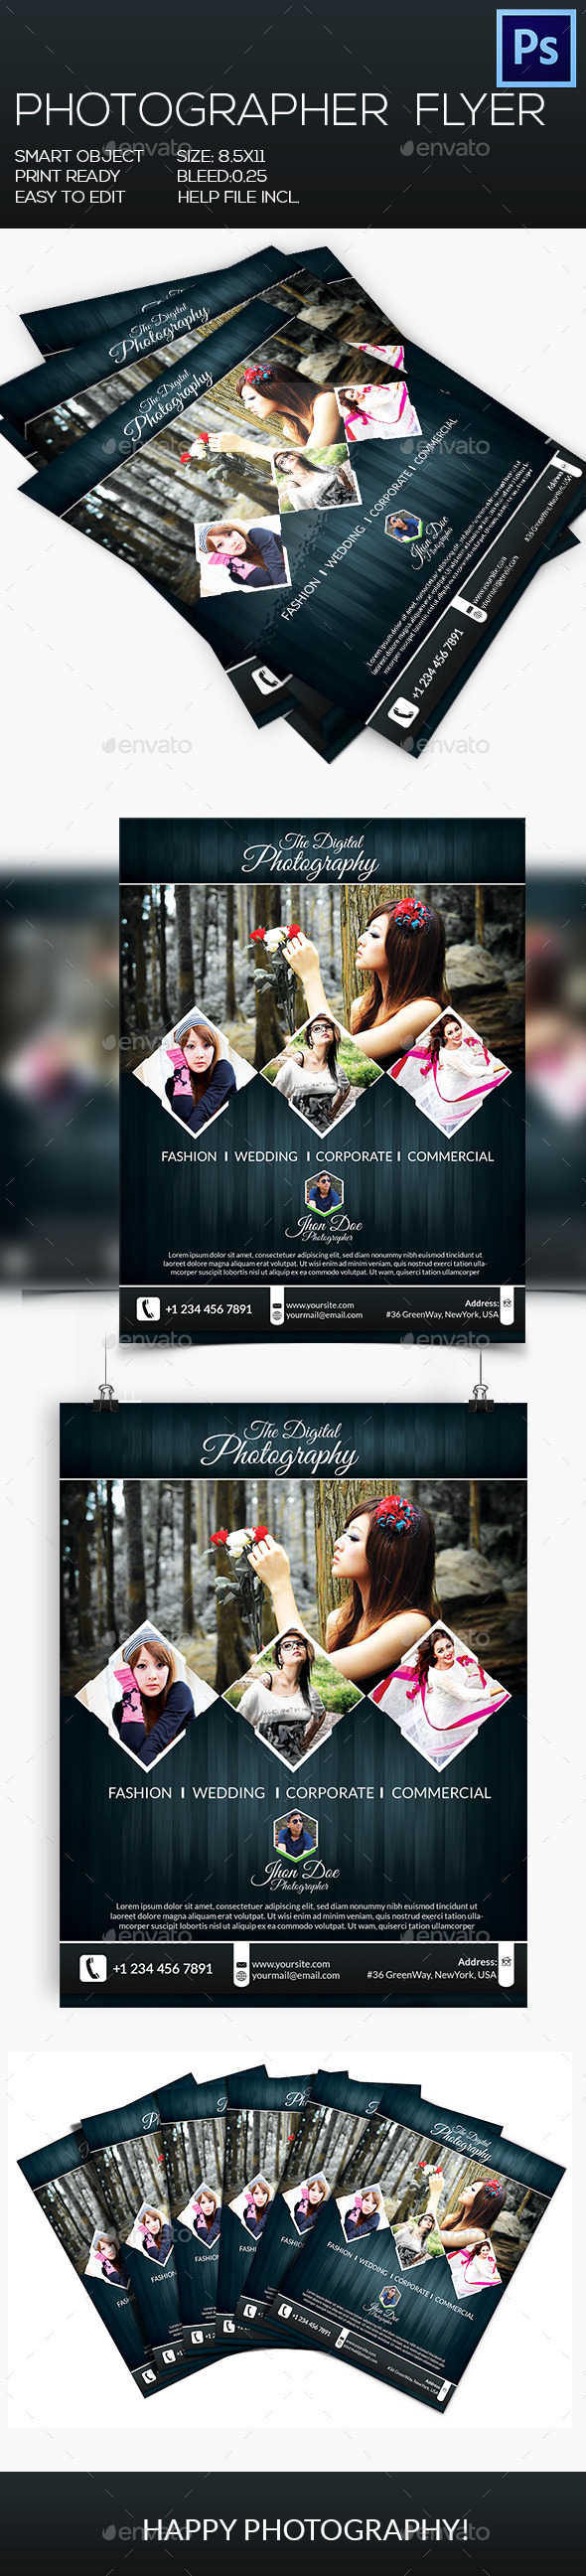 GraphicRiver Photographer Flyer 8950537